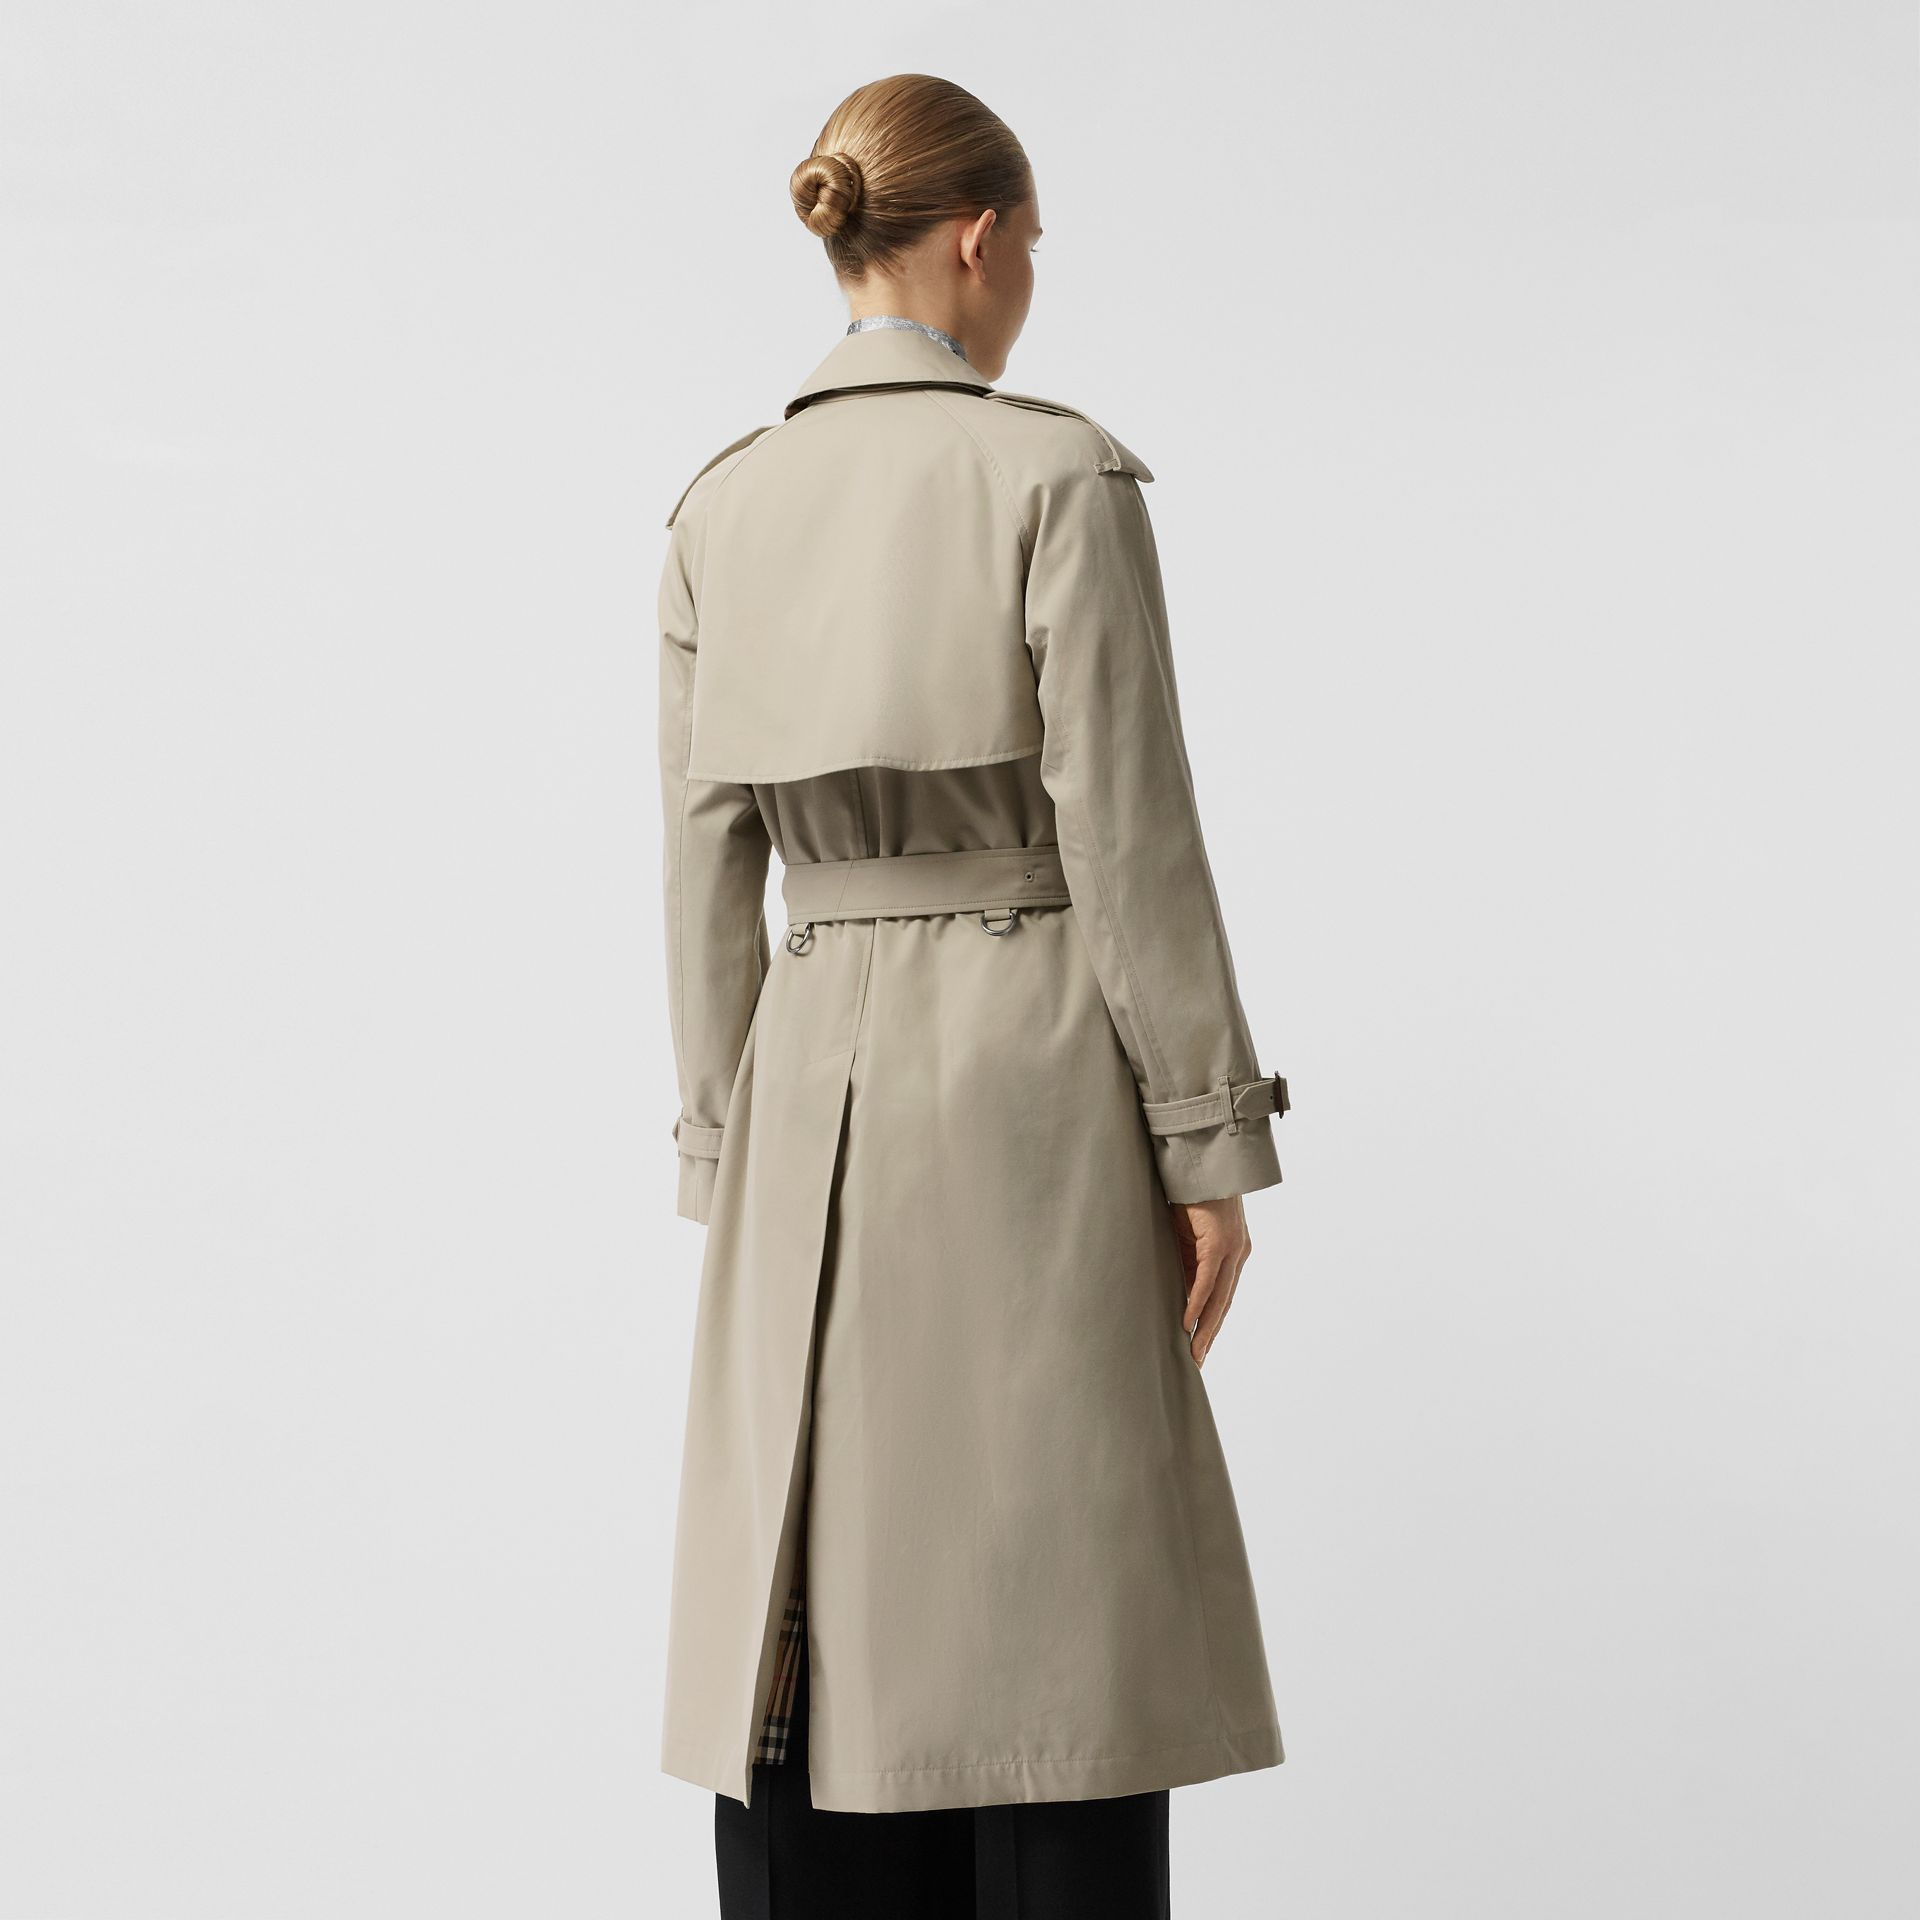 Grommet Detail Cotton Gabardine Trench Coat in Stone - Women | Burberry United Kingdom - gallery image 2